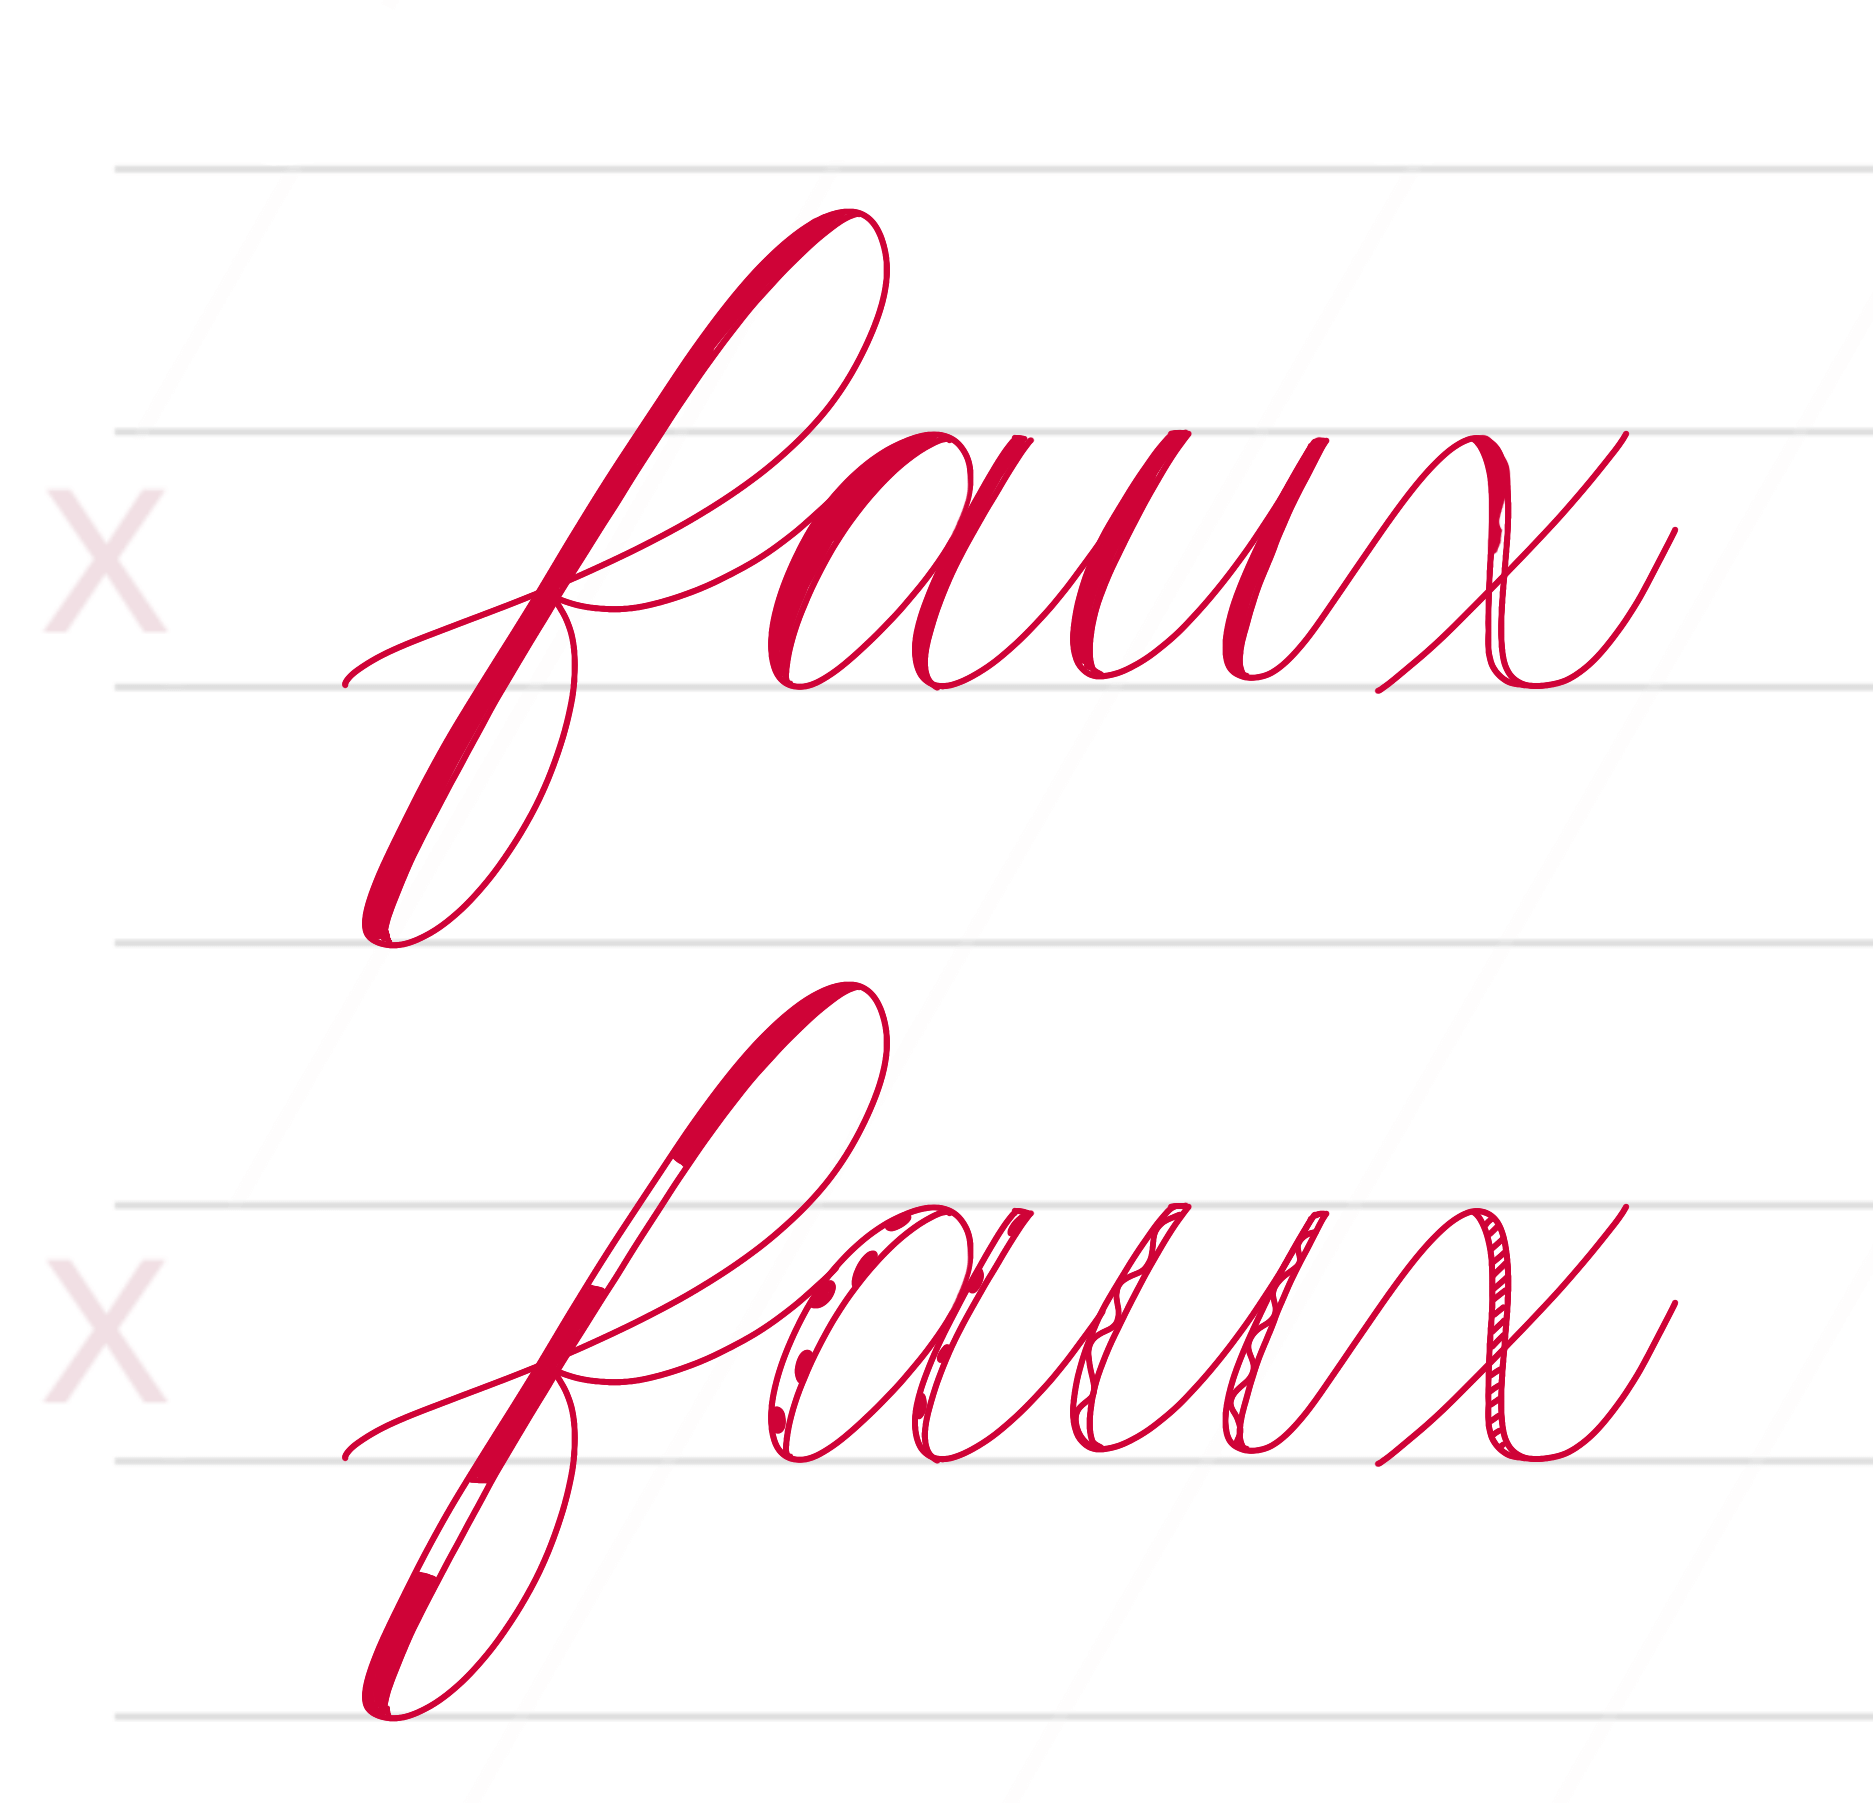 Cherry Pearl Creative brush calligraphy verses faux calligraphy